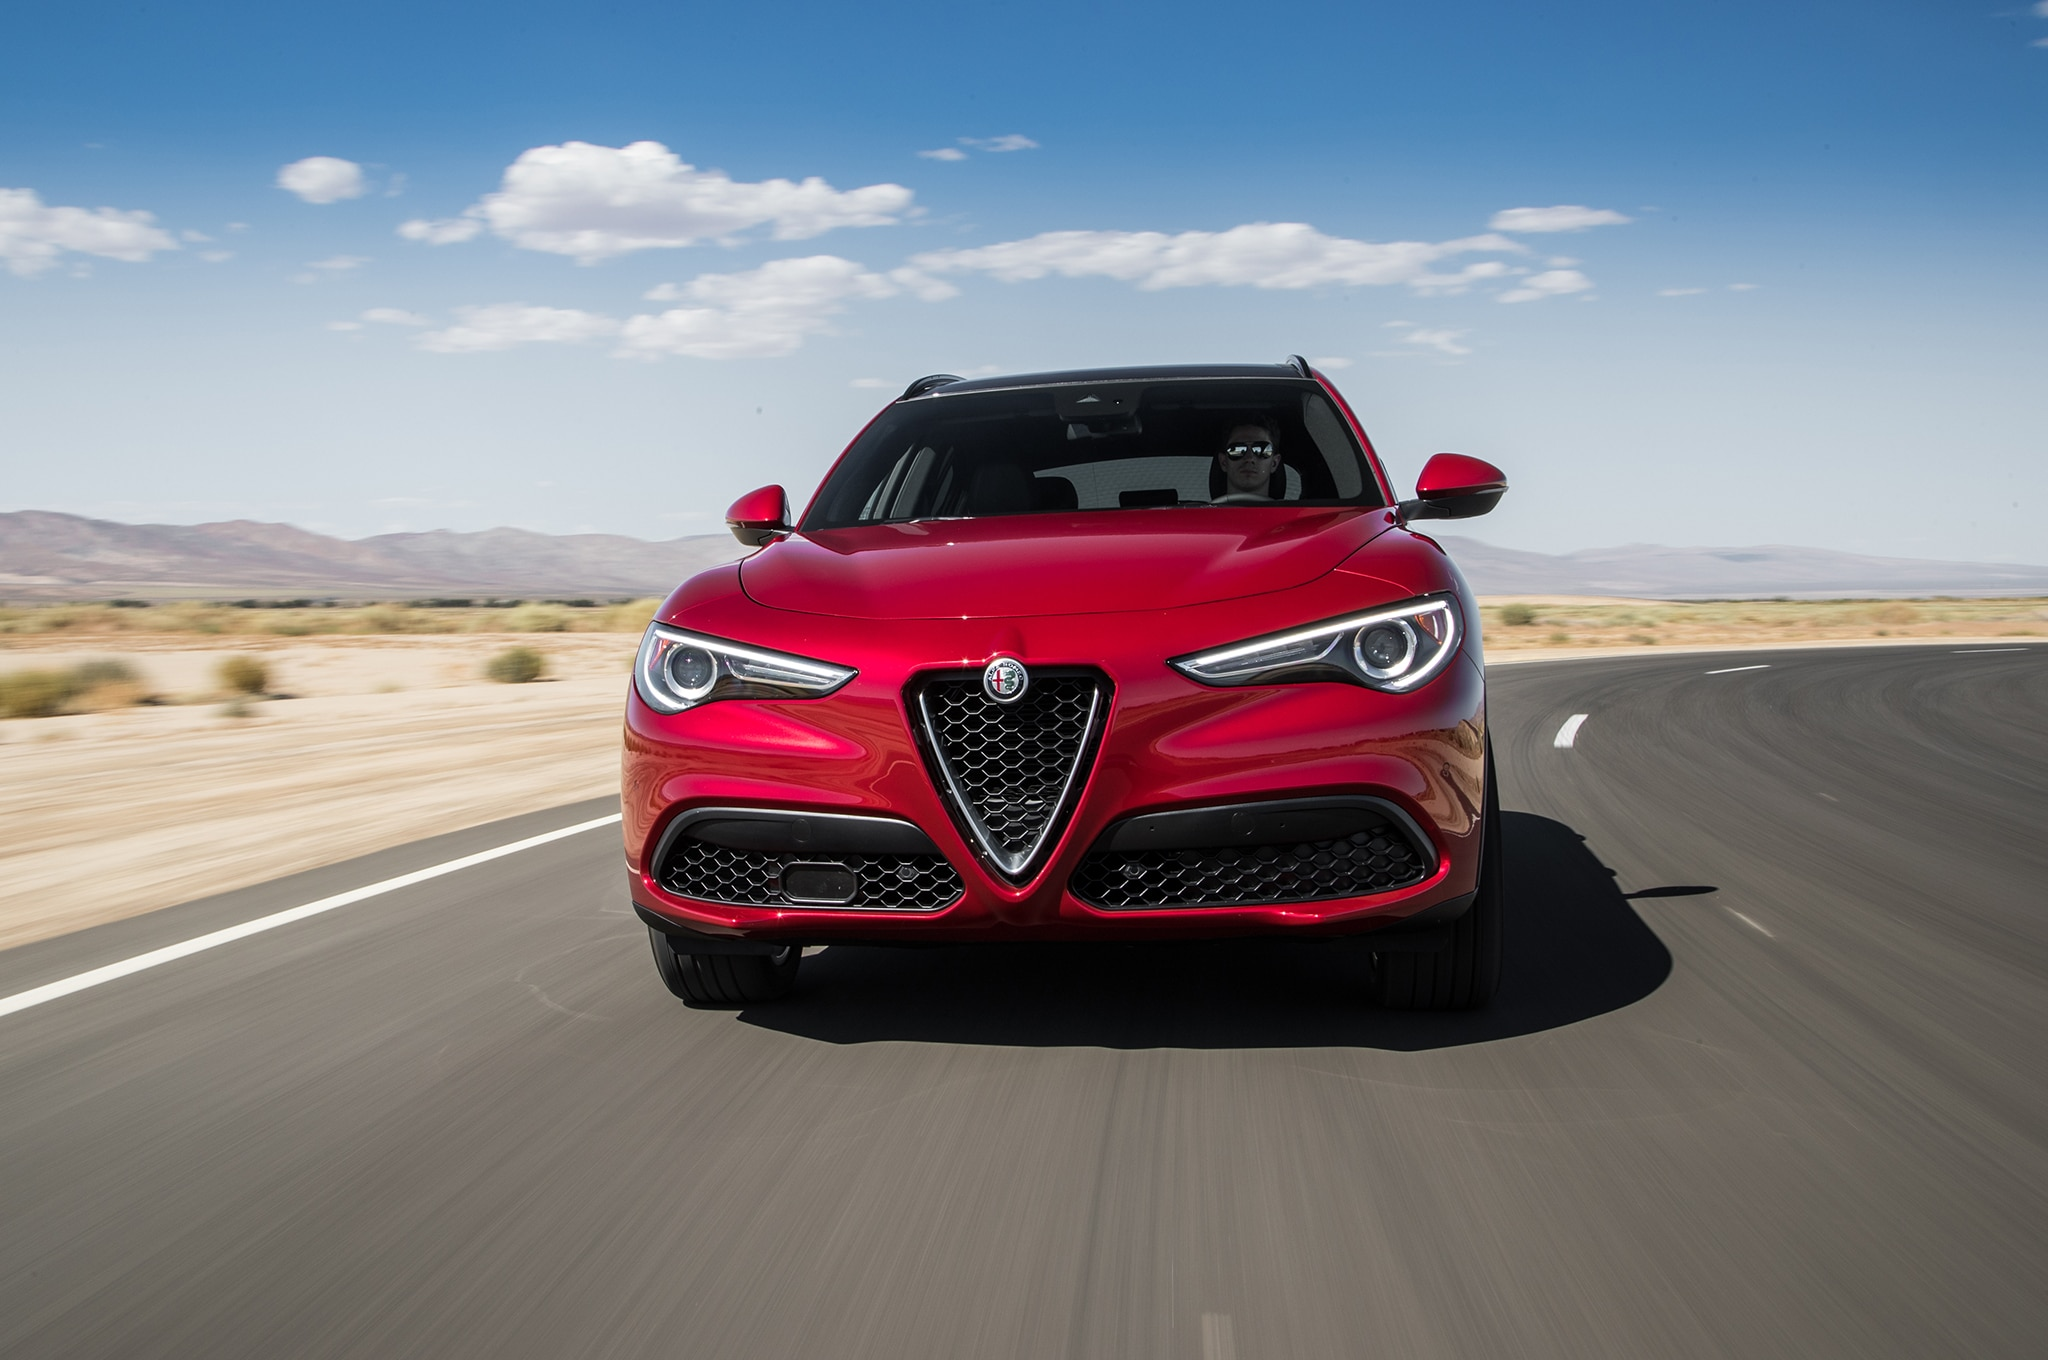 Larger Alfa Romeo SUV Is Reportedly In The Works